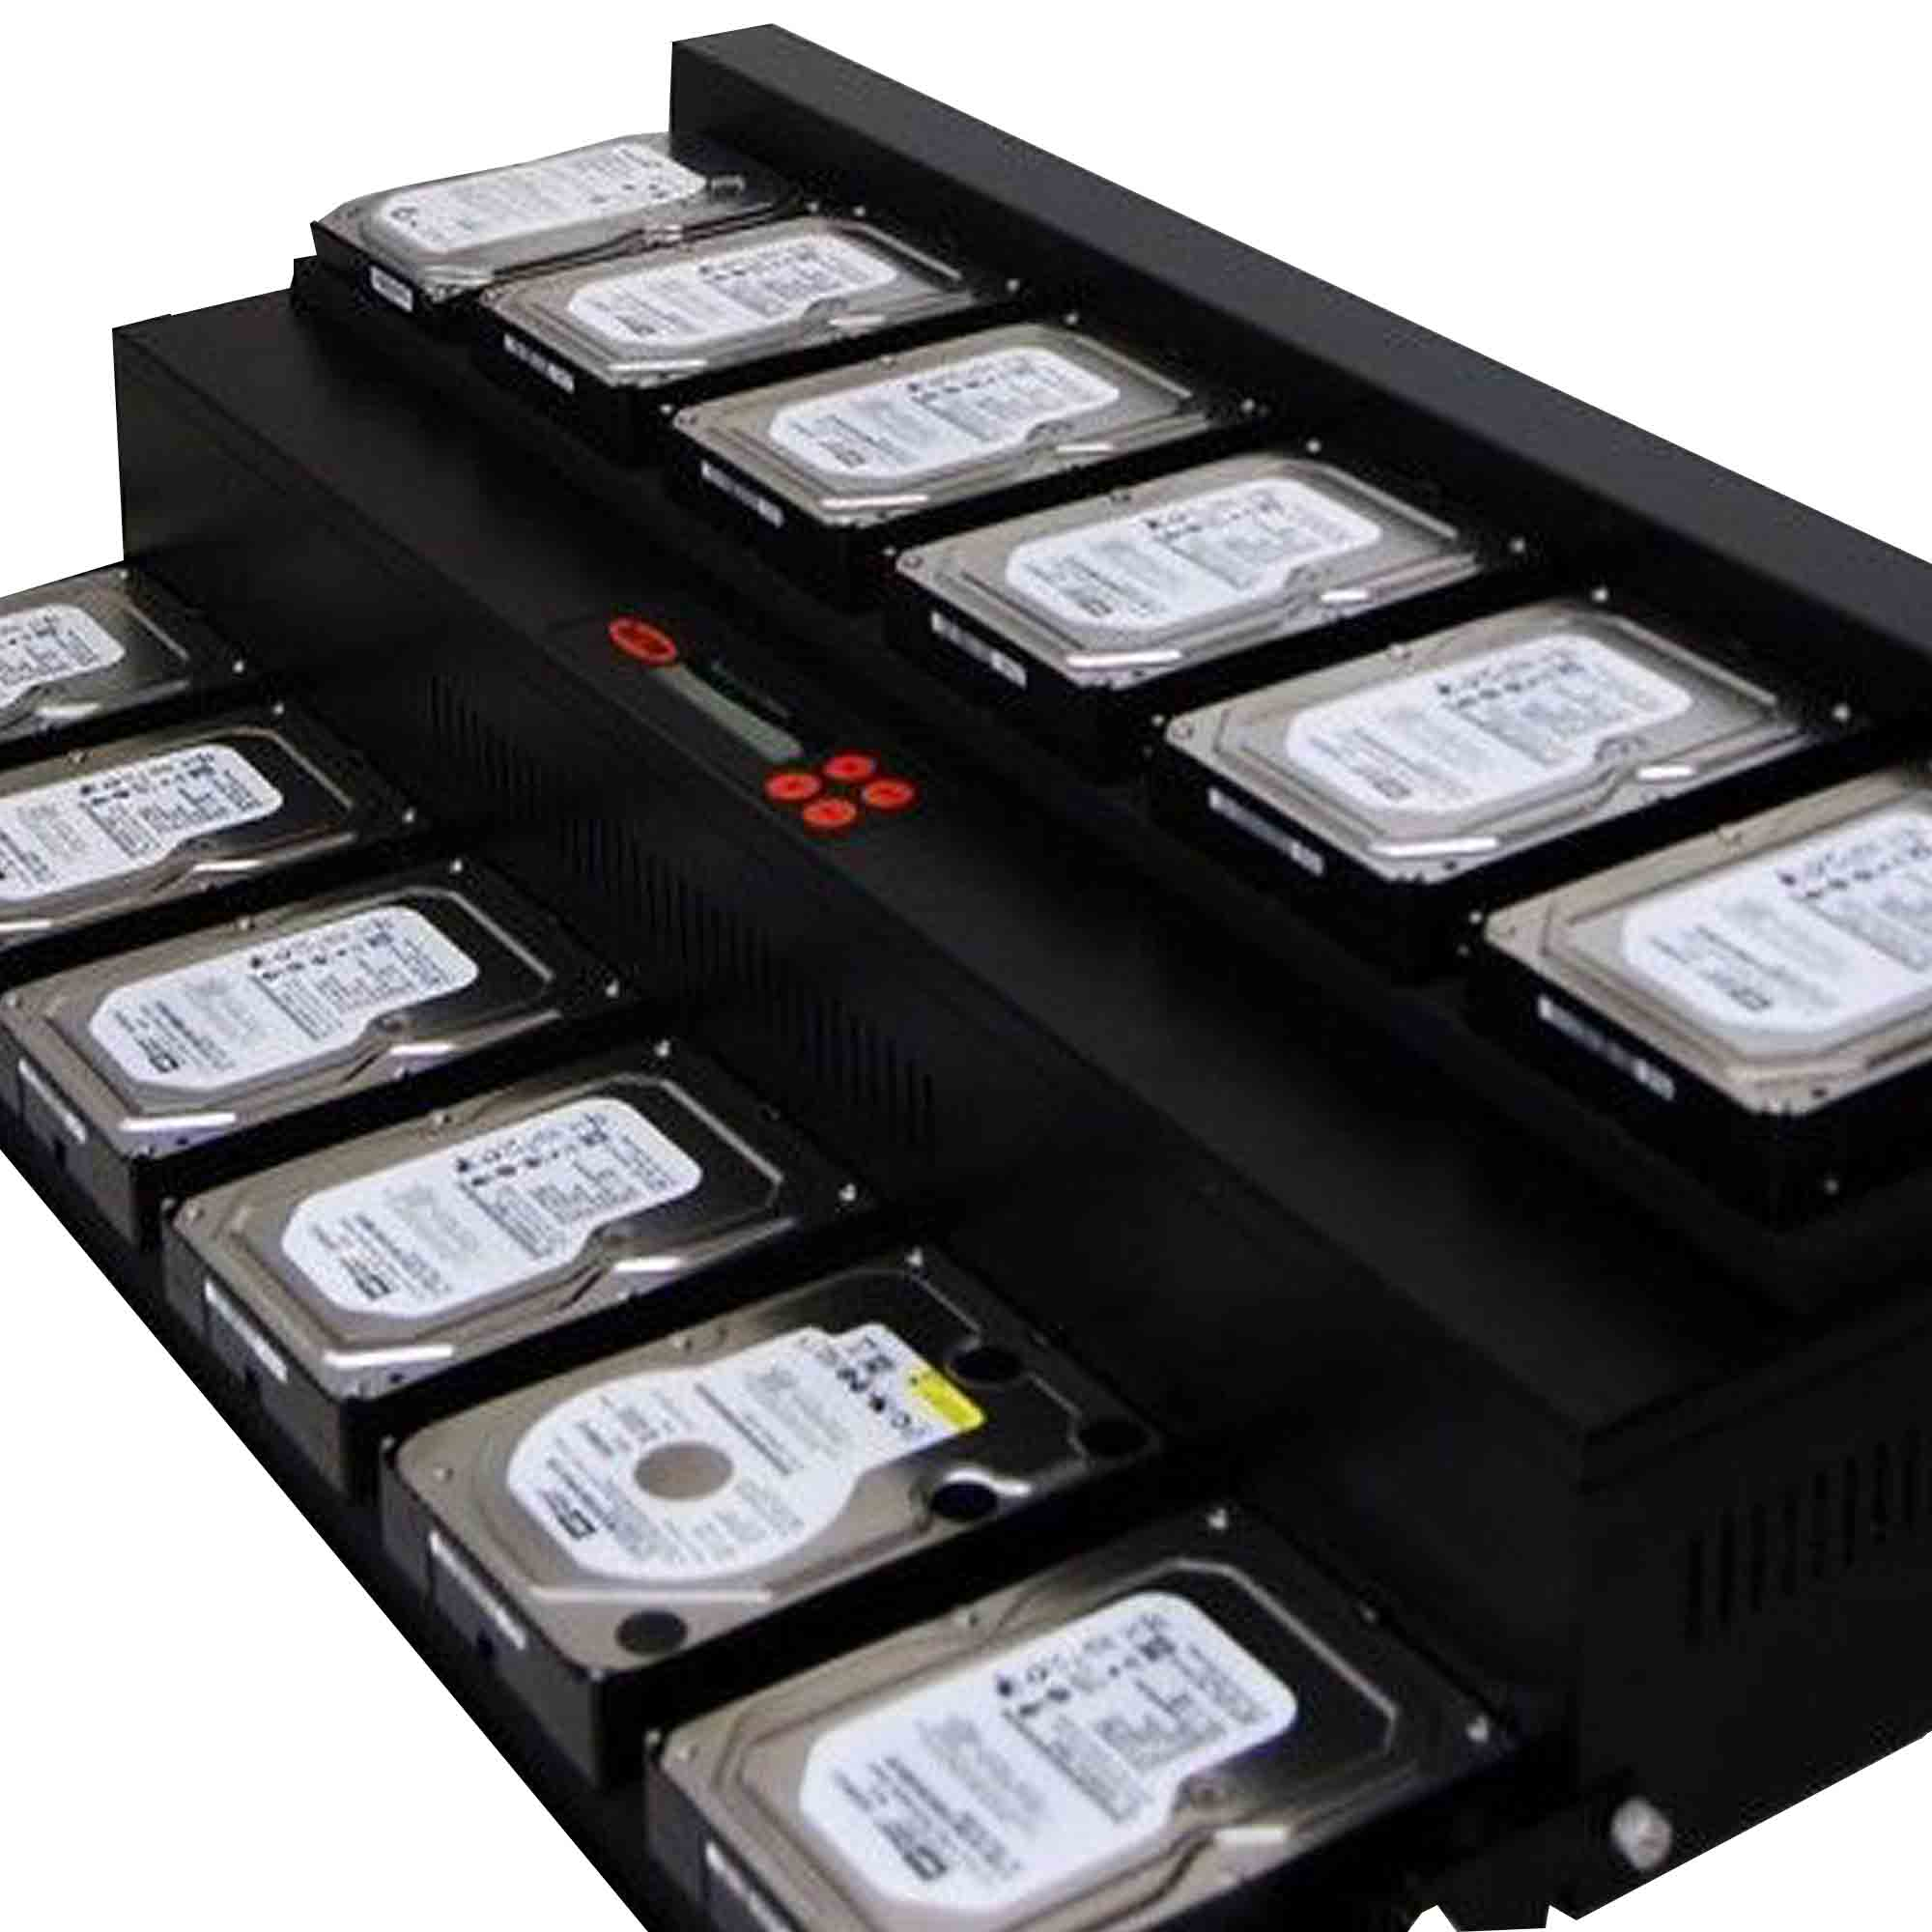 FlatBed HDD/SSD Duplicator